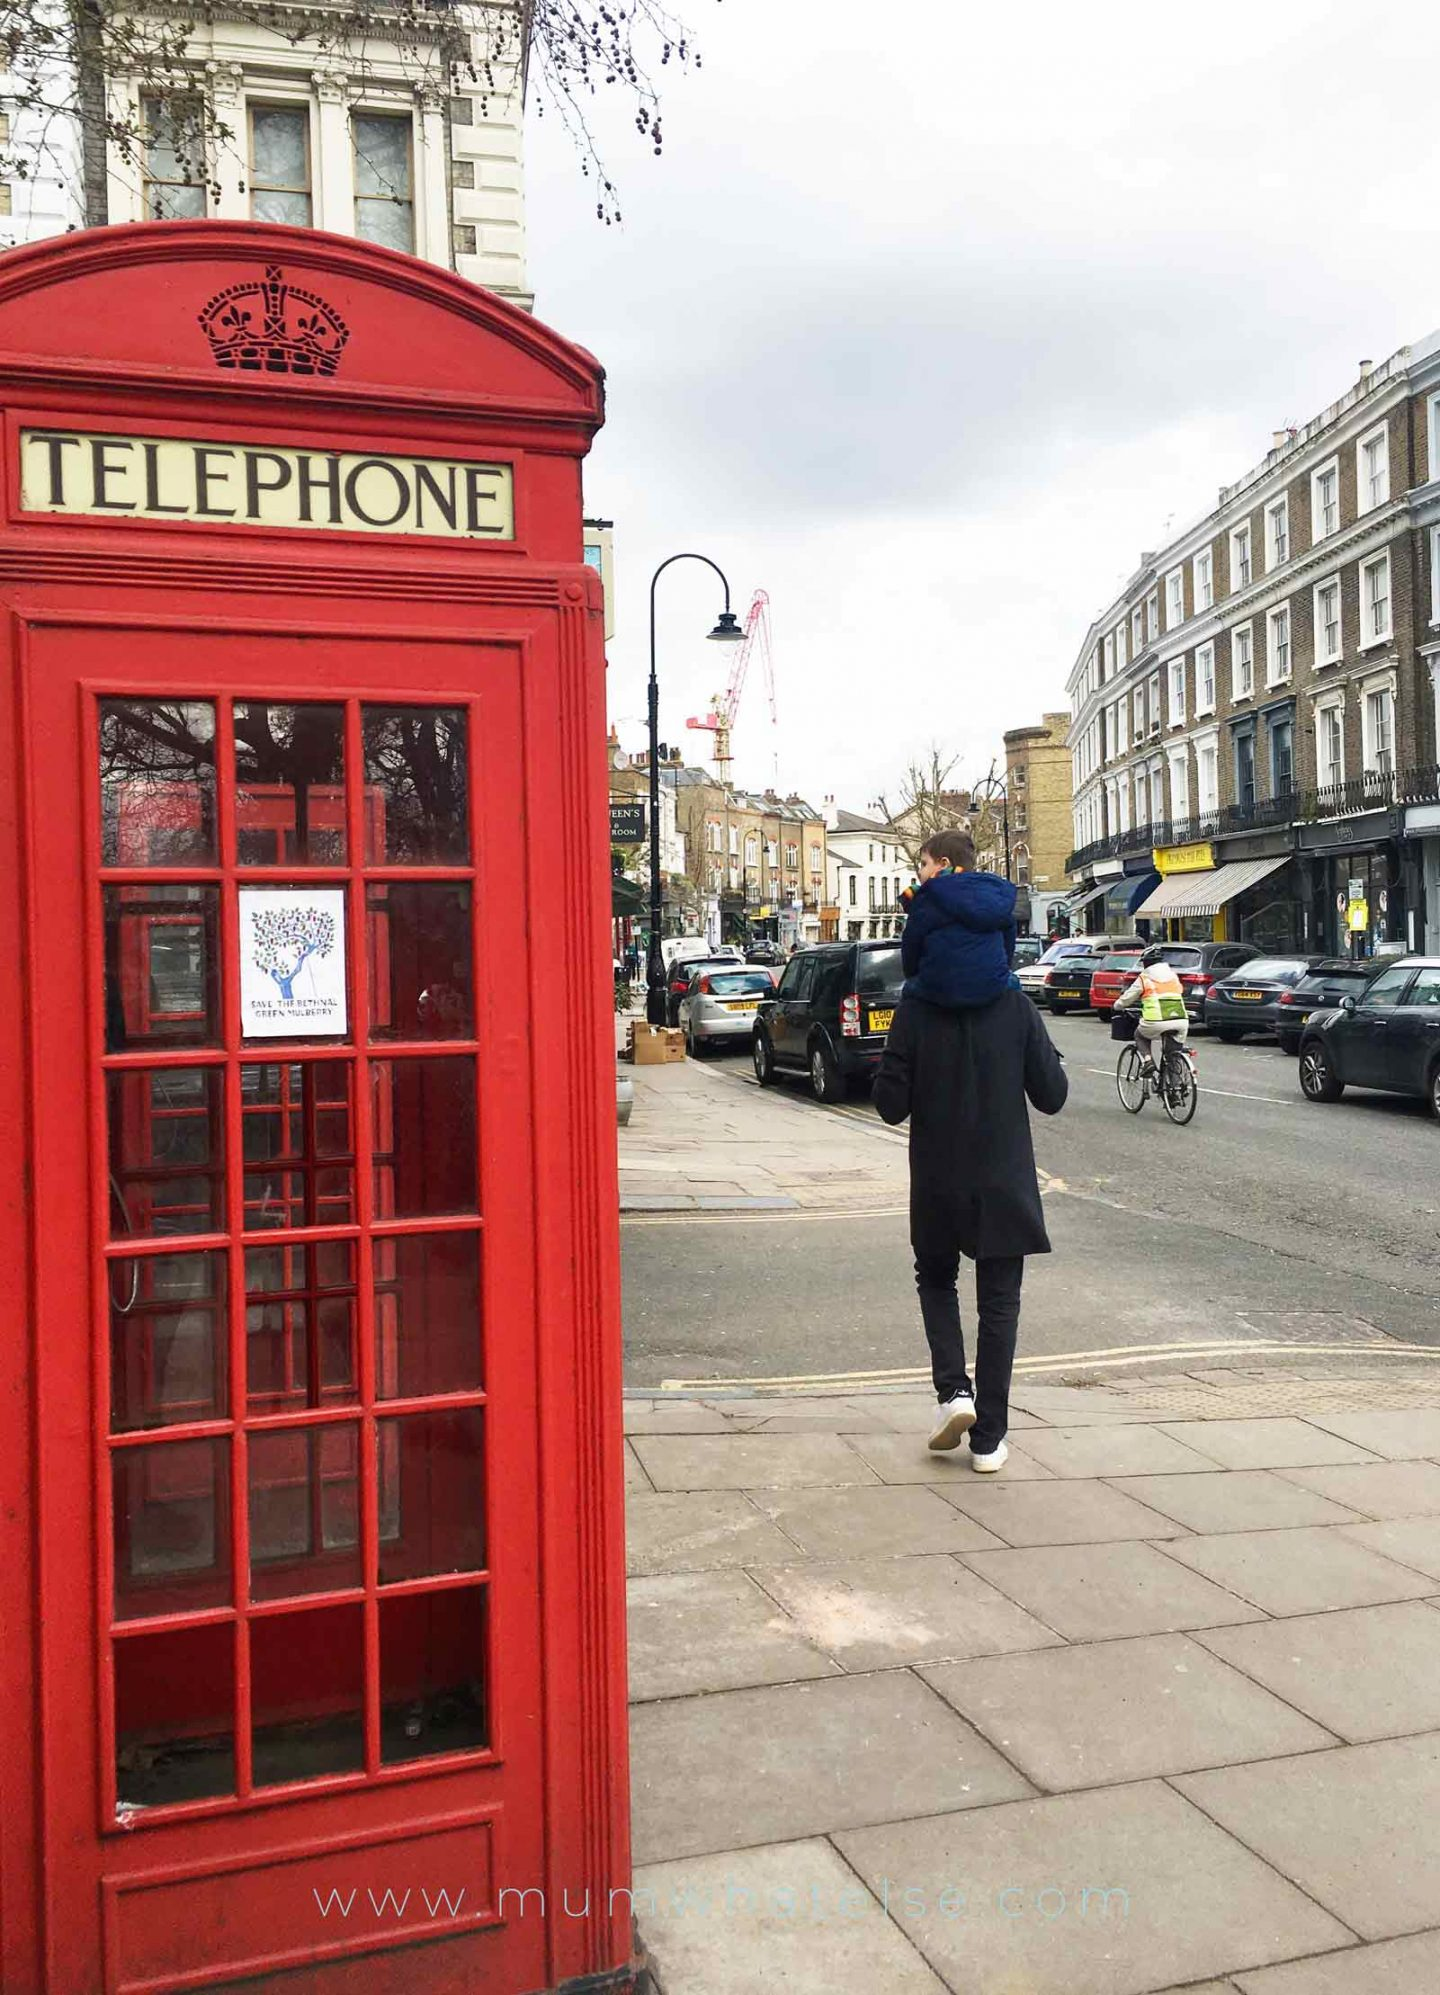 A street in Primrose Hill with the red phone booth